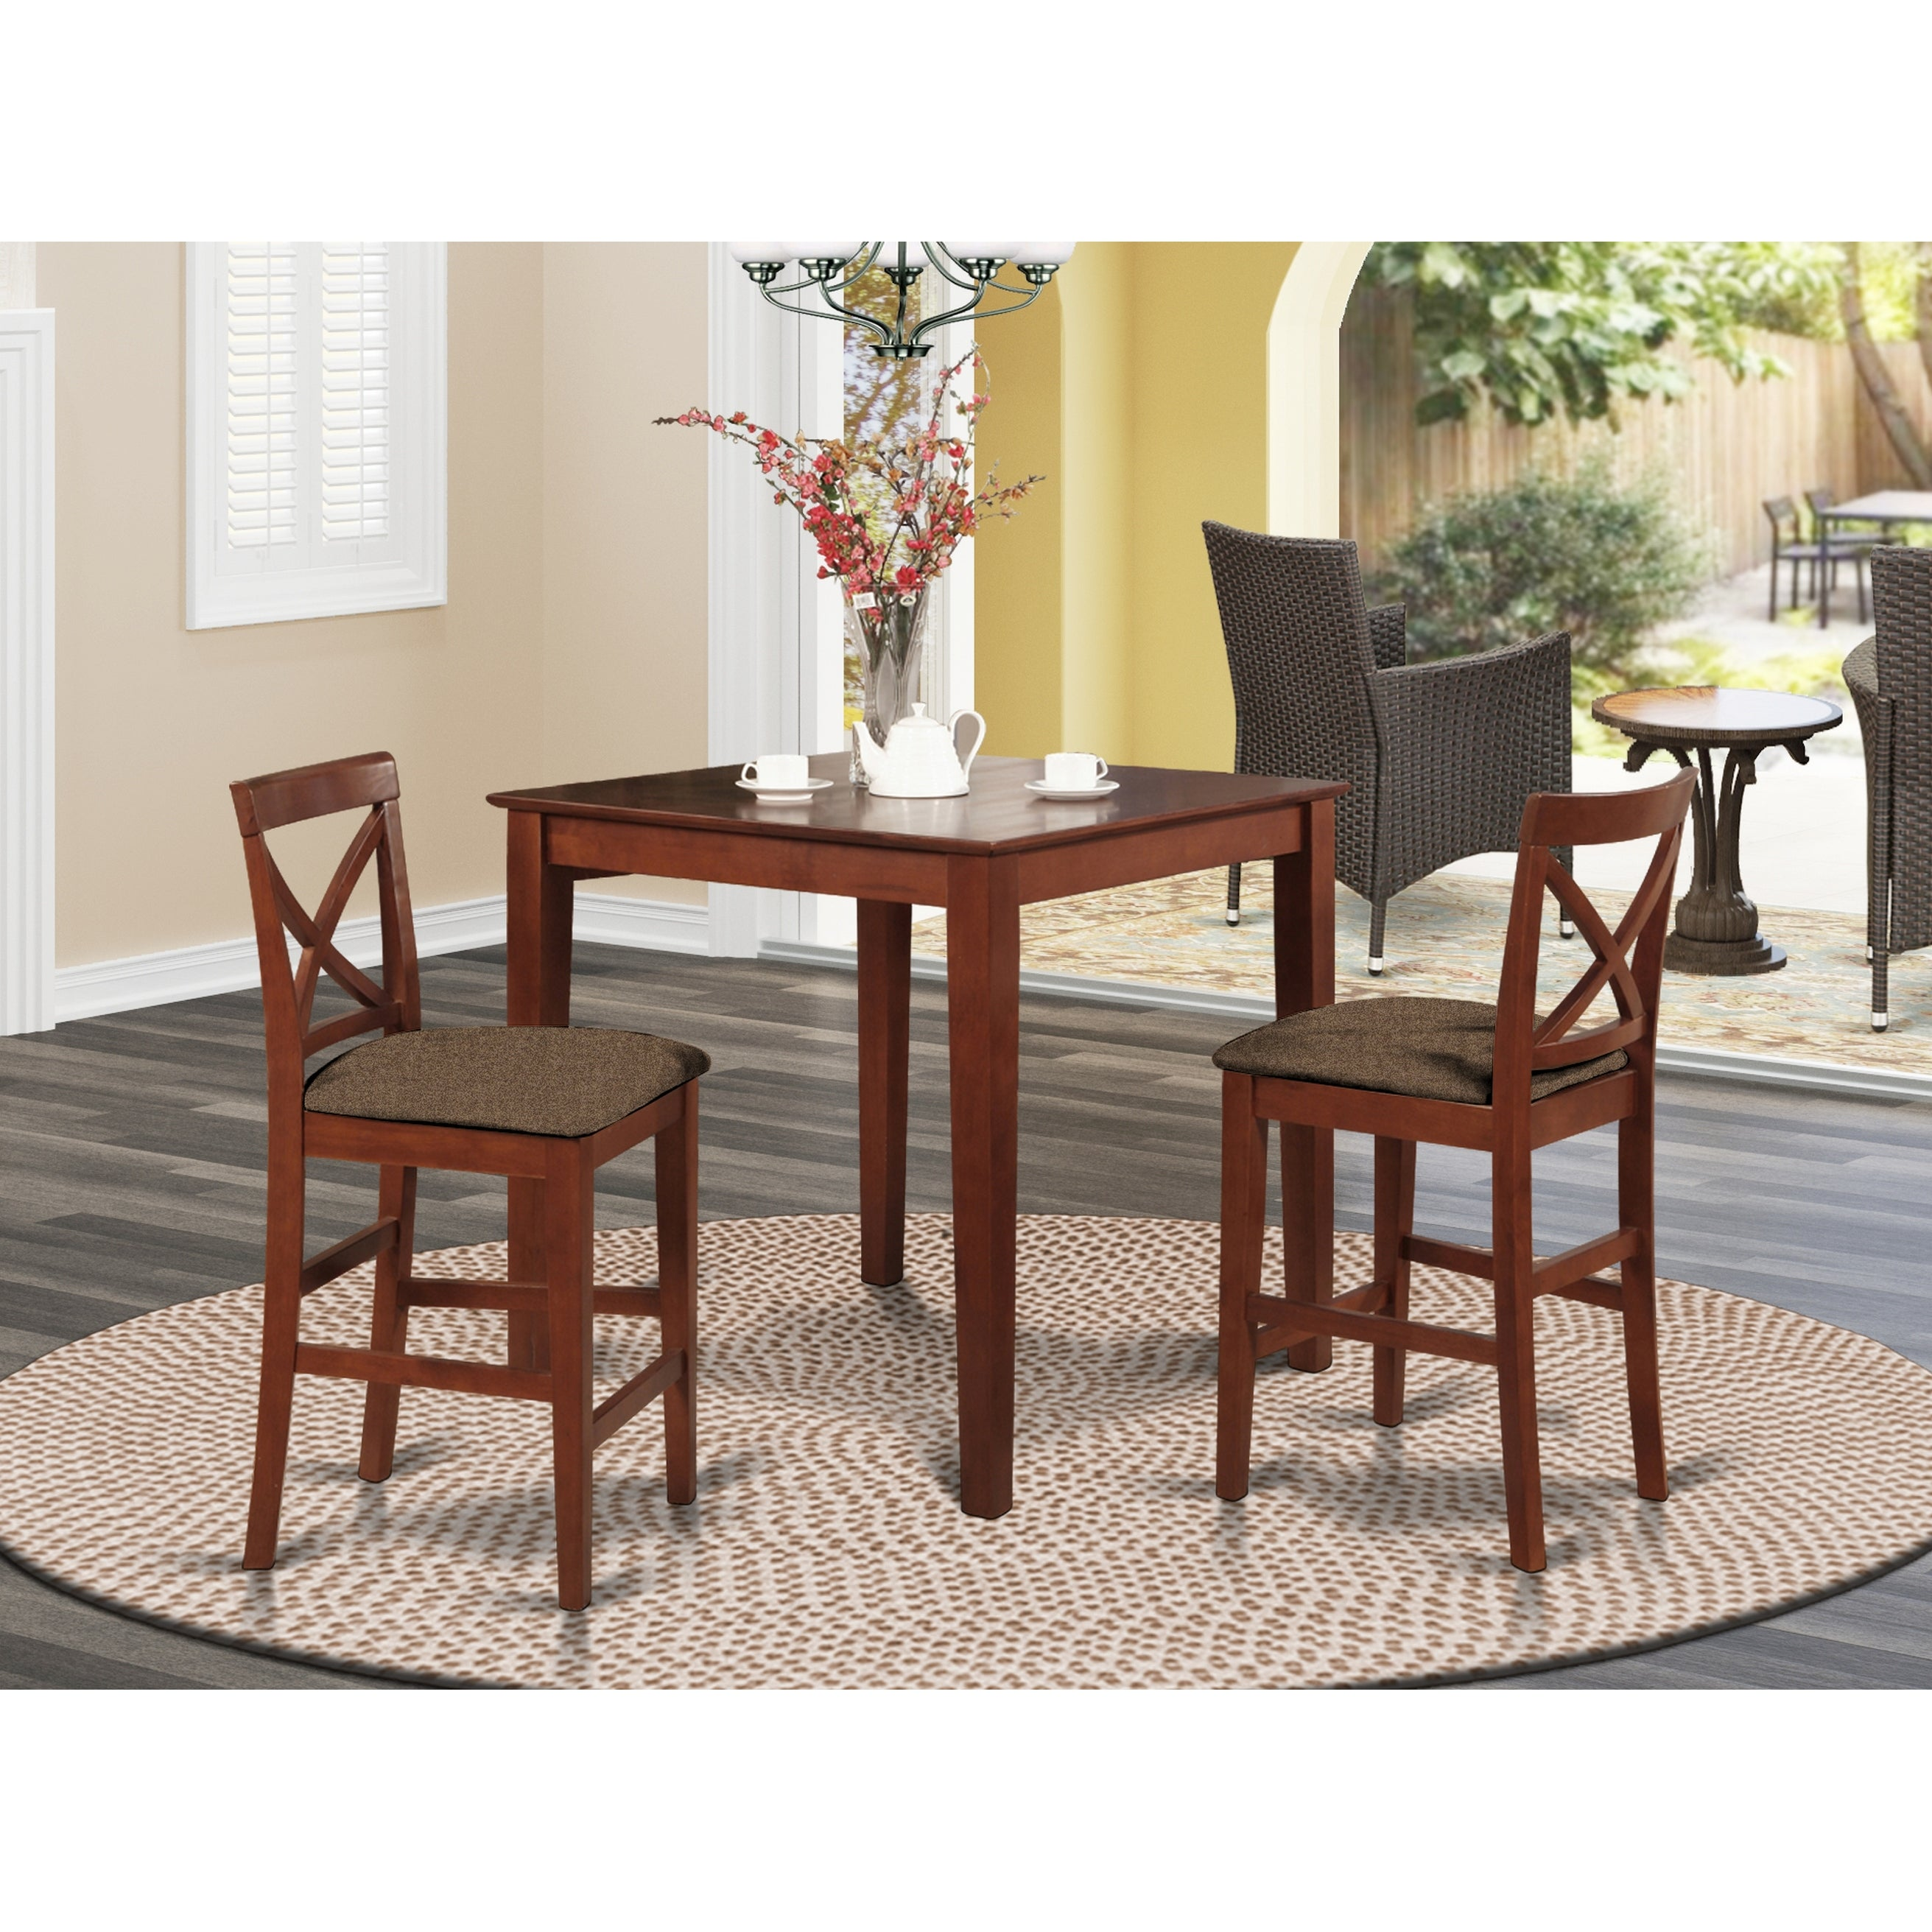 Picture of: Shop Black Friday Deals On Dark Brown Pub Table And 2 Stools 3 Piece Dining Set Overstock 10201091 Microfiber